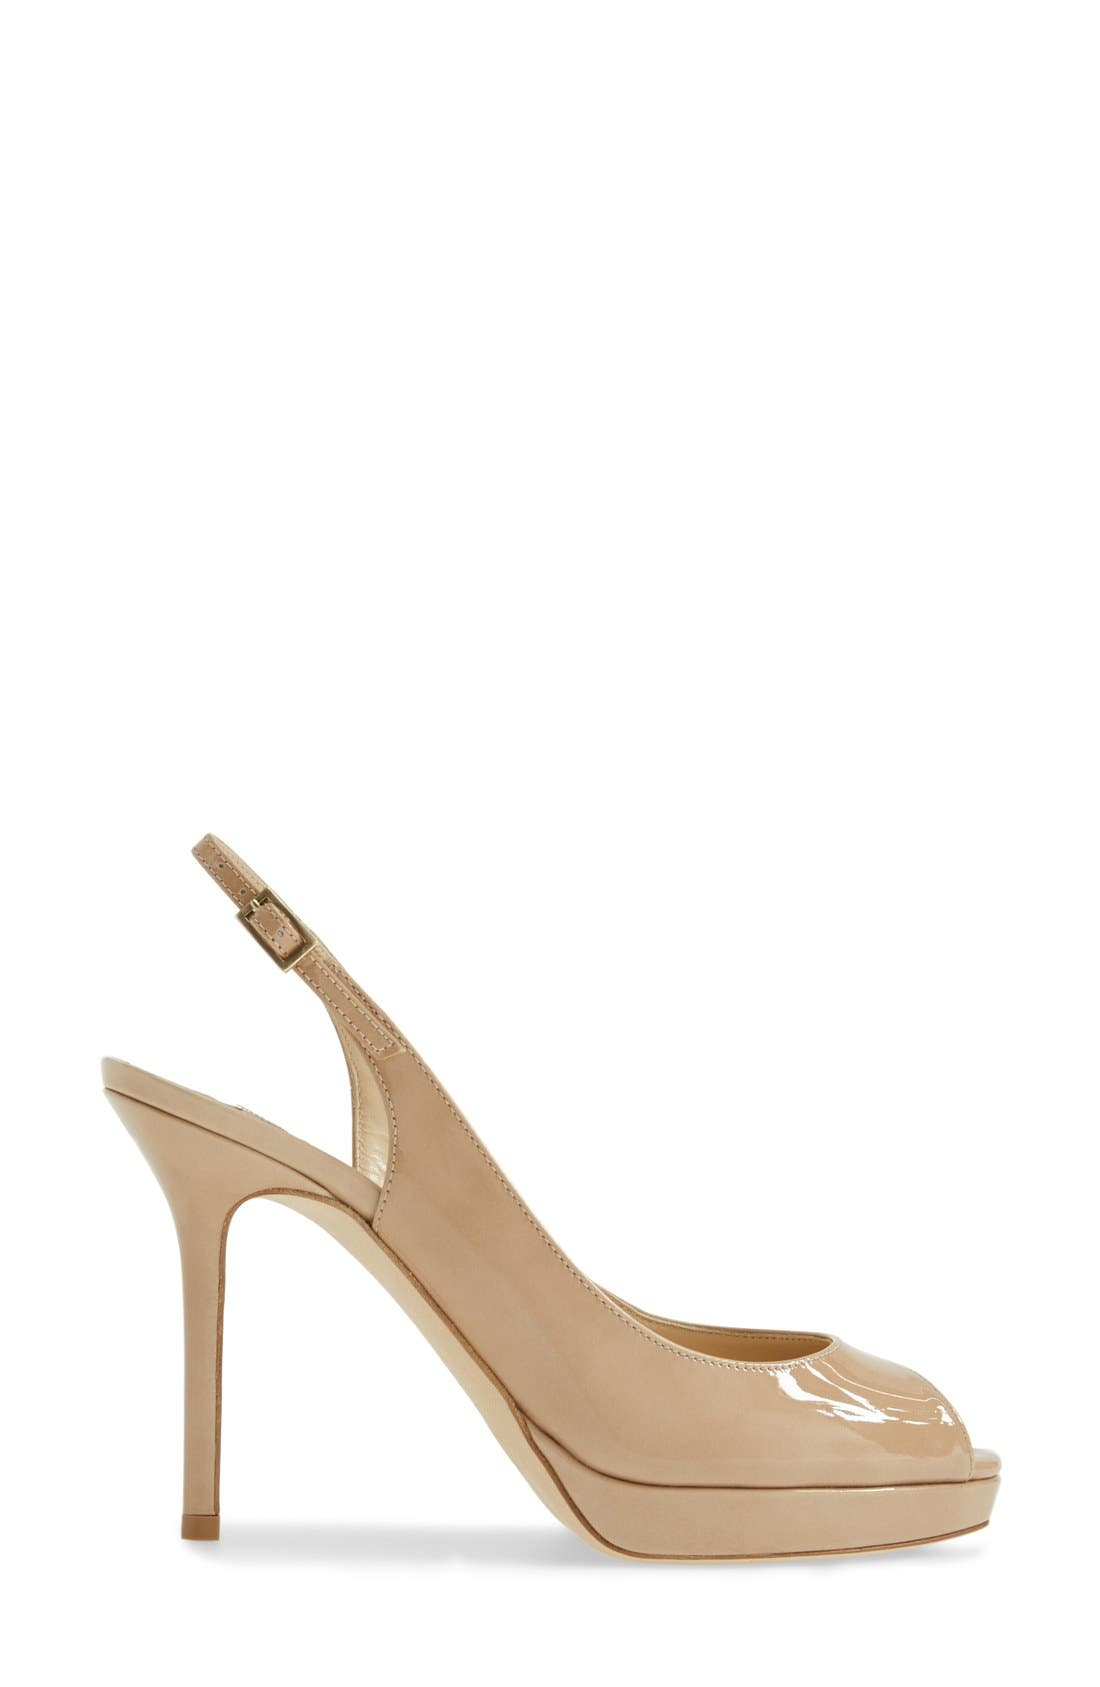 Alternate Image 4  - Jimmy Choo 'Nova' Patent Leather Slingback Pump (Women)